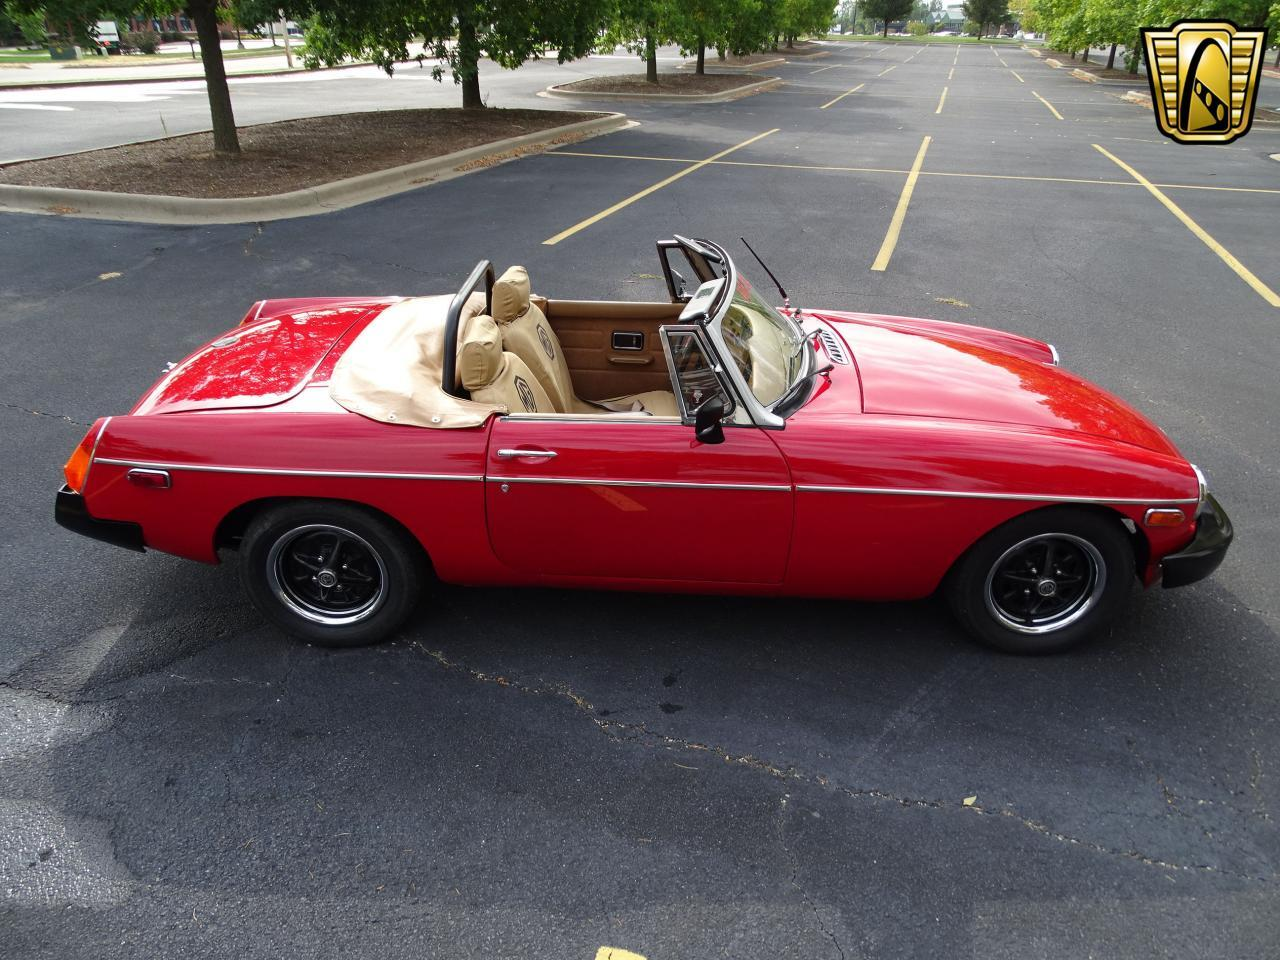 Large Picture of '78 MG MGB located in O'Fallon Illinois - $11,995.00 Offered by Gateway Classic Cars - St. Louis - LVNA